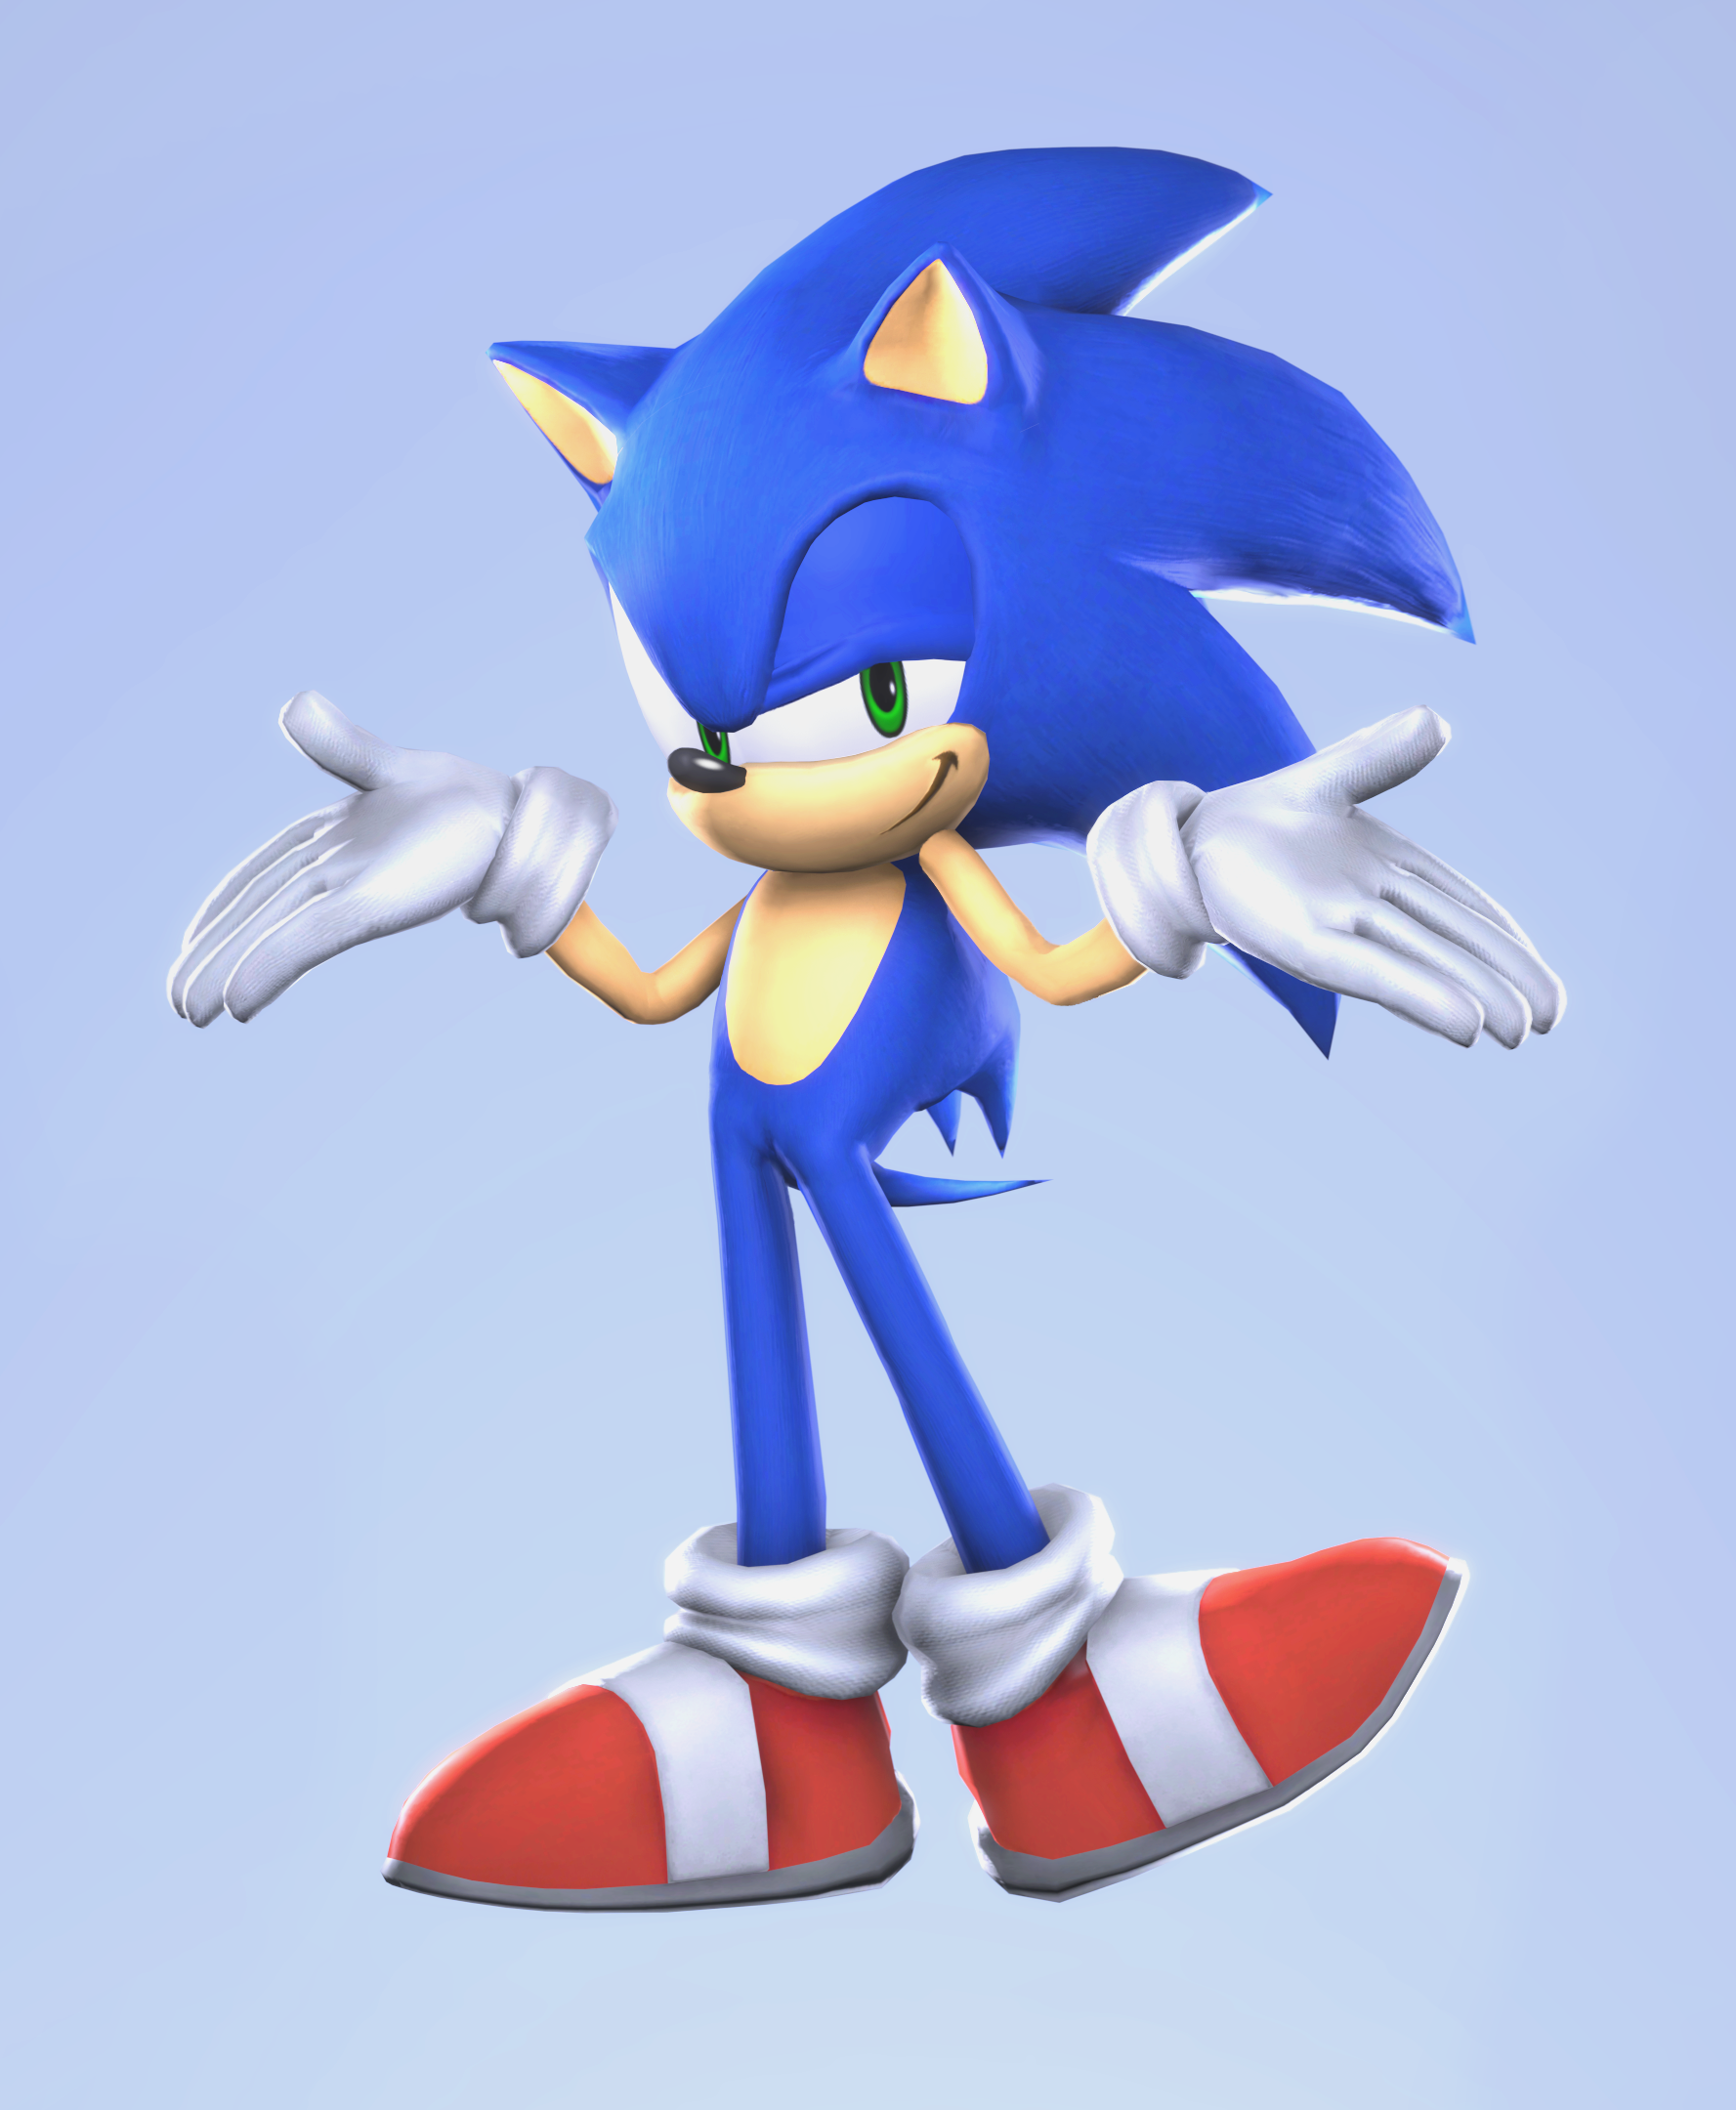 ツ Sonic The Hedgehog Sonic The Hedgehog Sonic Hedgehog Drawing